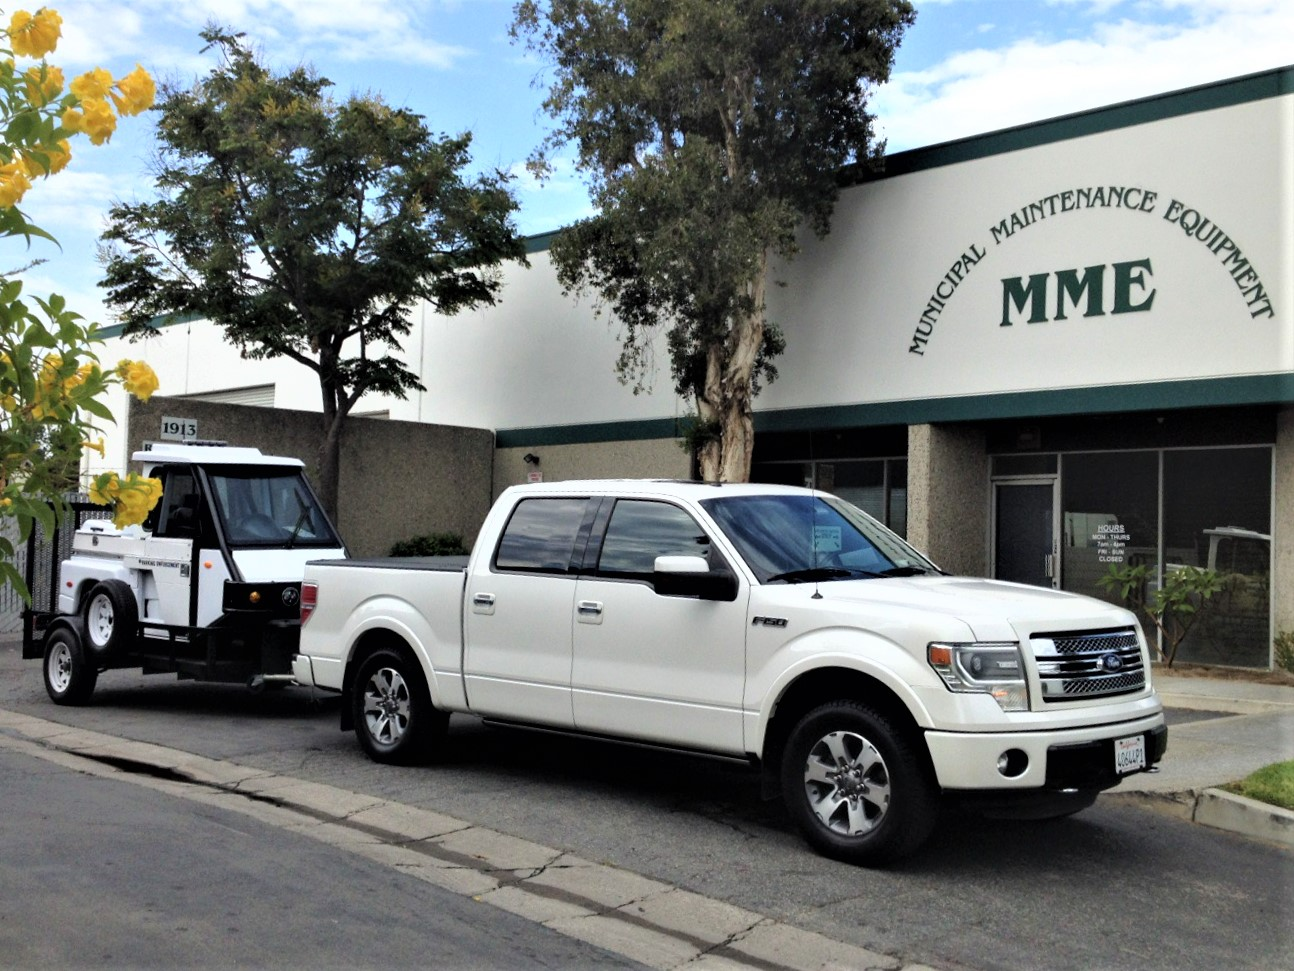 WWI Dealer MME Experiences Increased Vehicle Reliability and Enhanced Company Performance